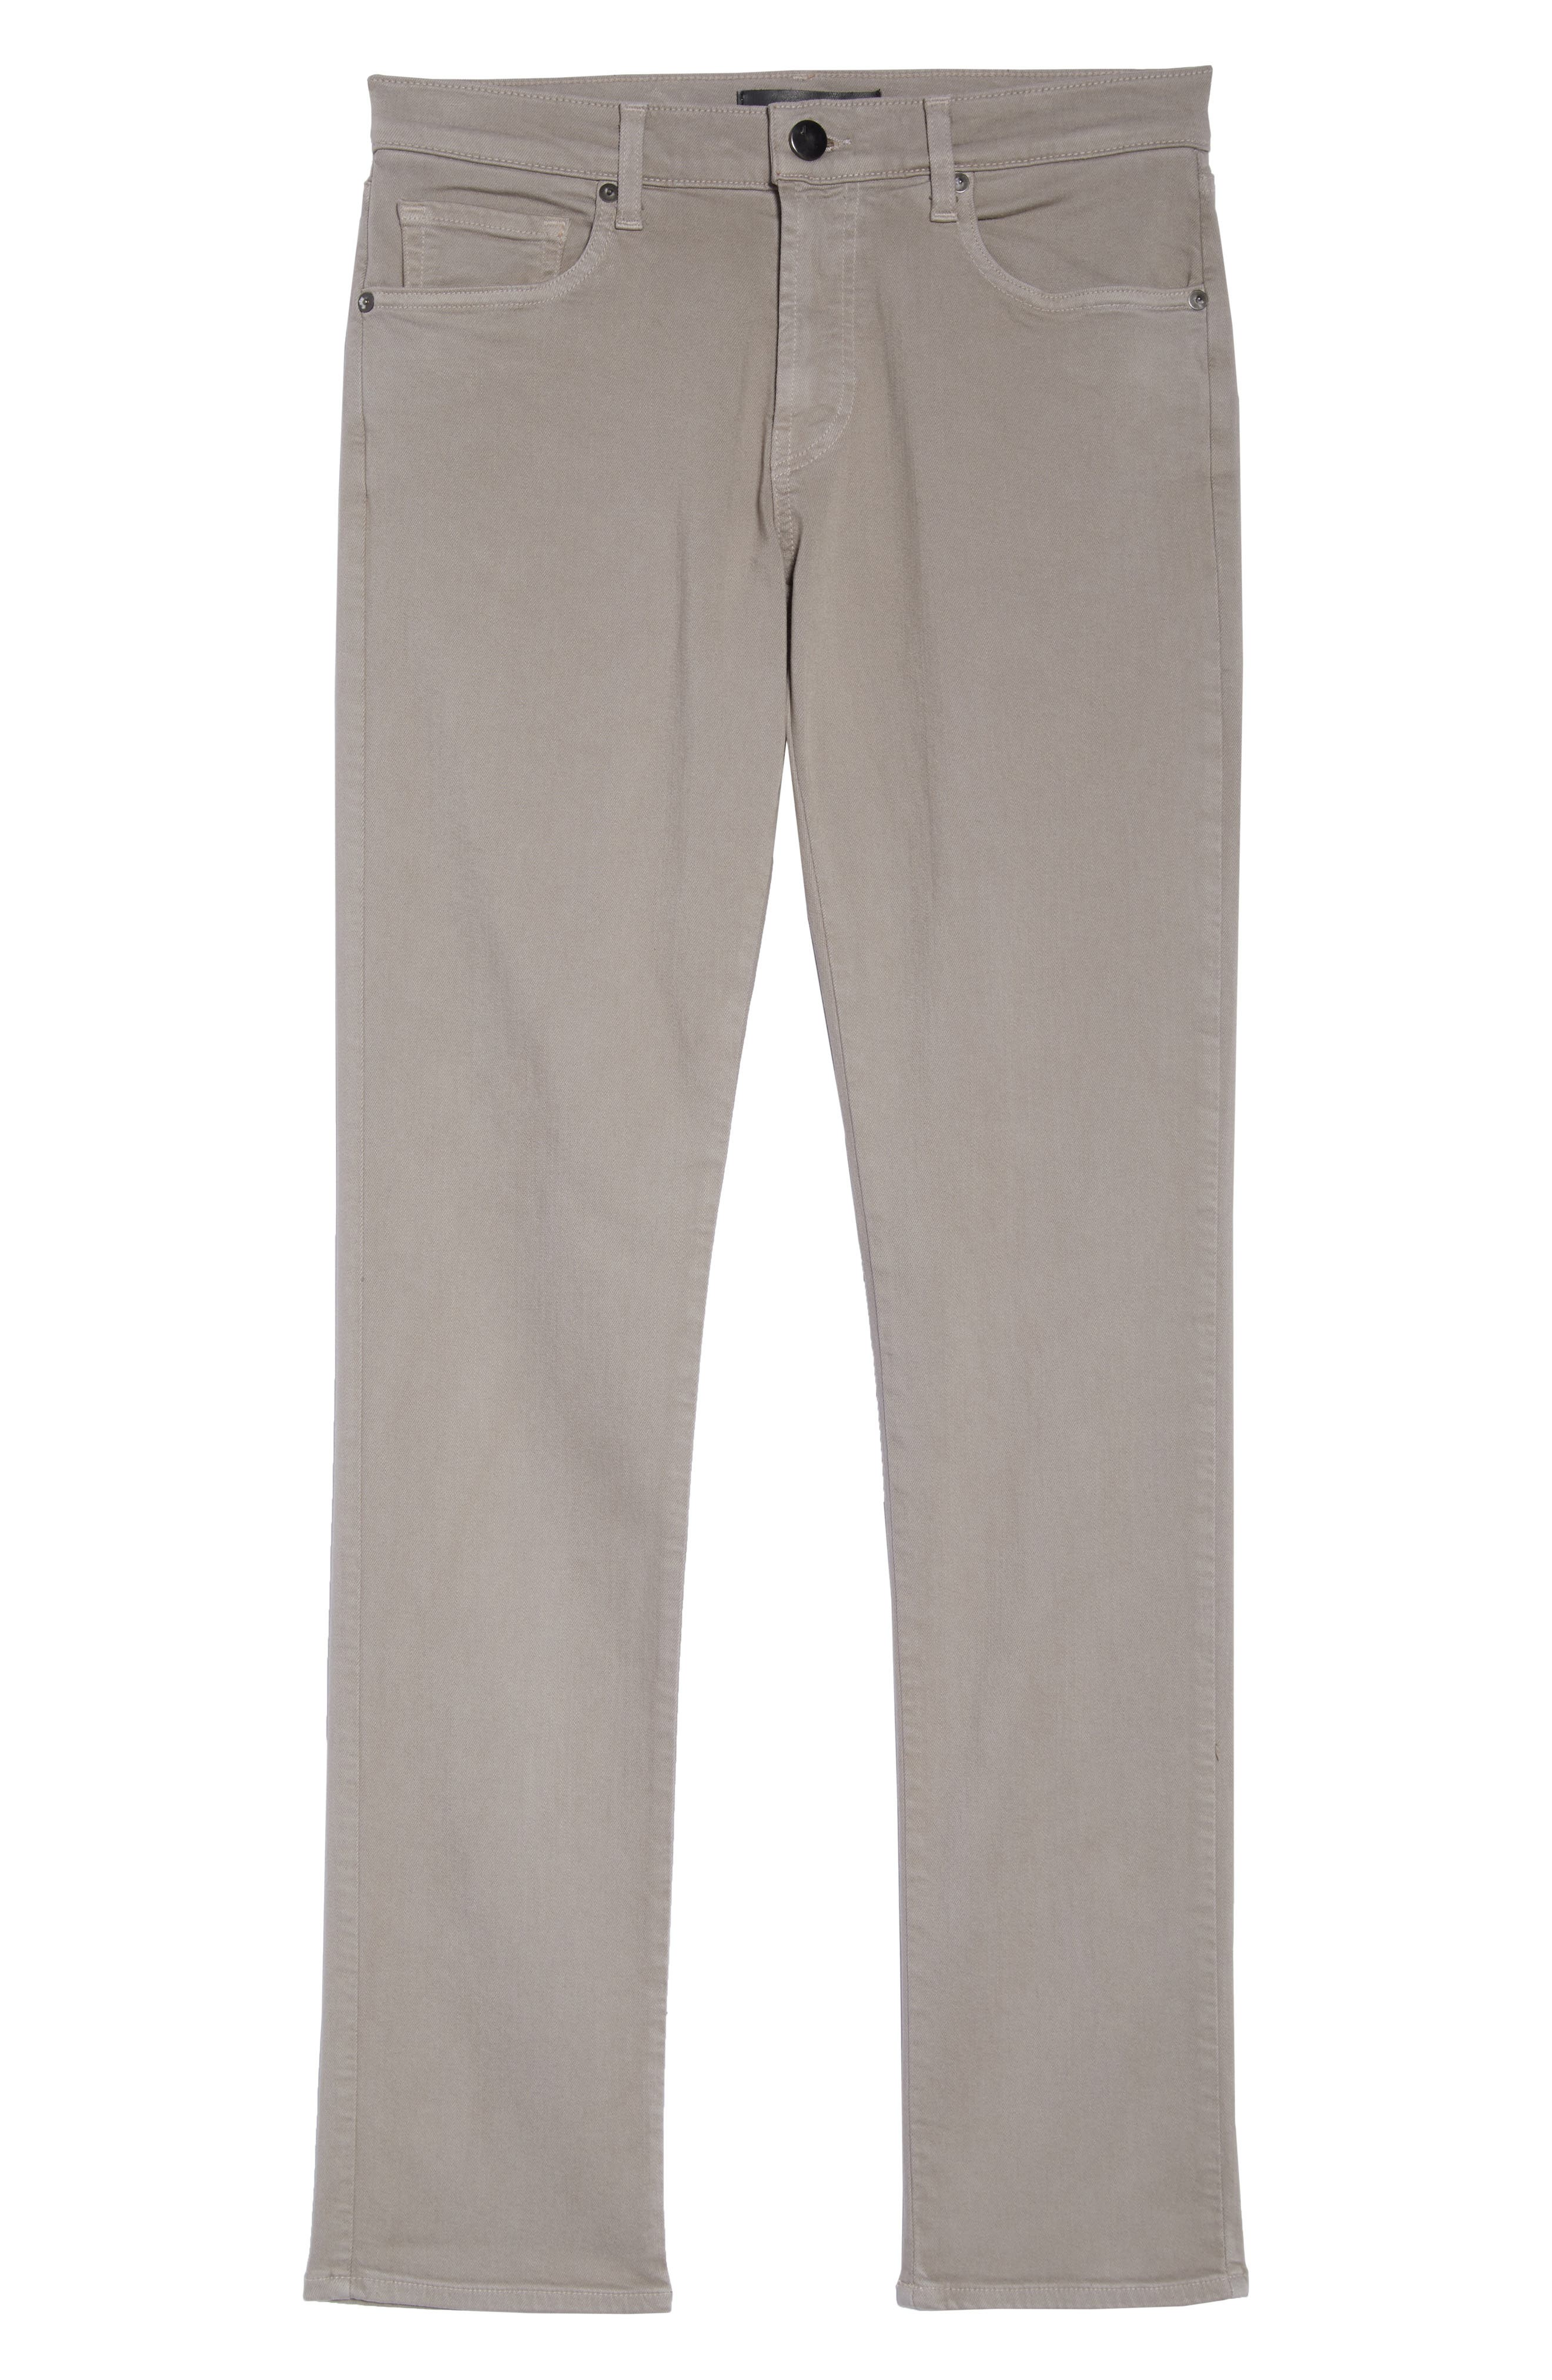 Tyler Slim Fit Jeans,                             Alternate thumbnail 5, color,                             TOPE (TAUPE)